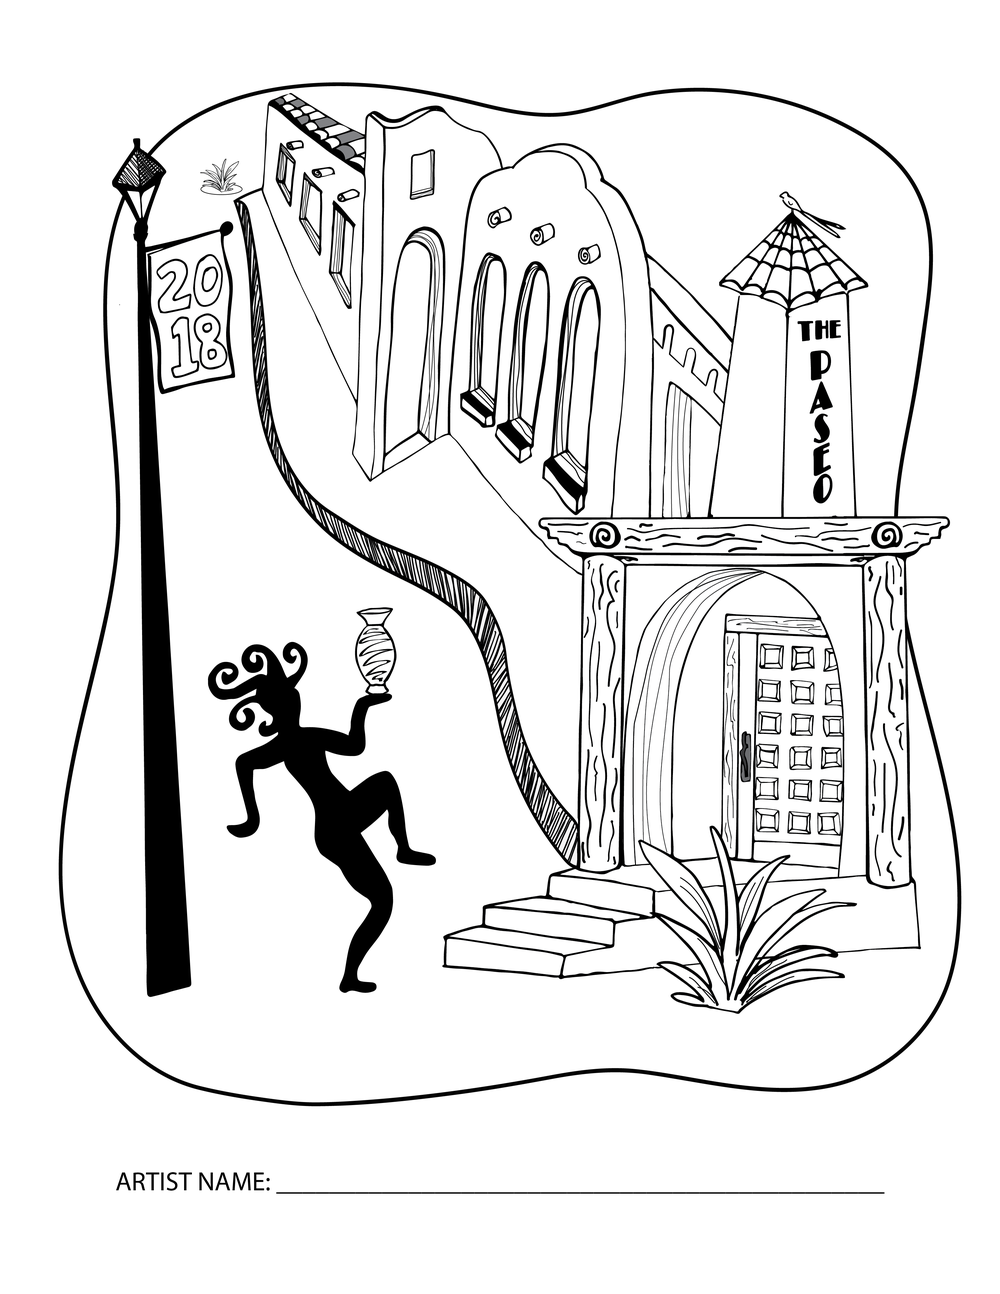 Poster Coloring Page-No Date_Artboard 1.png